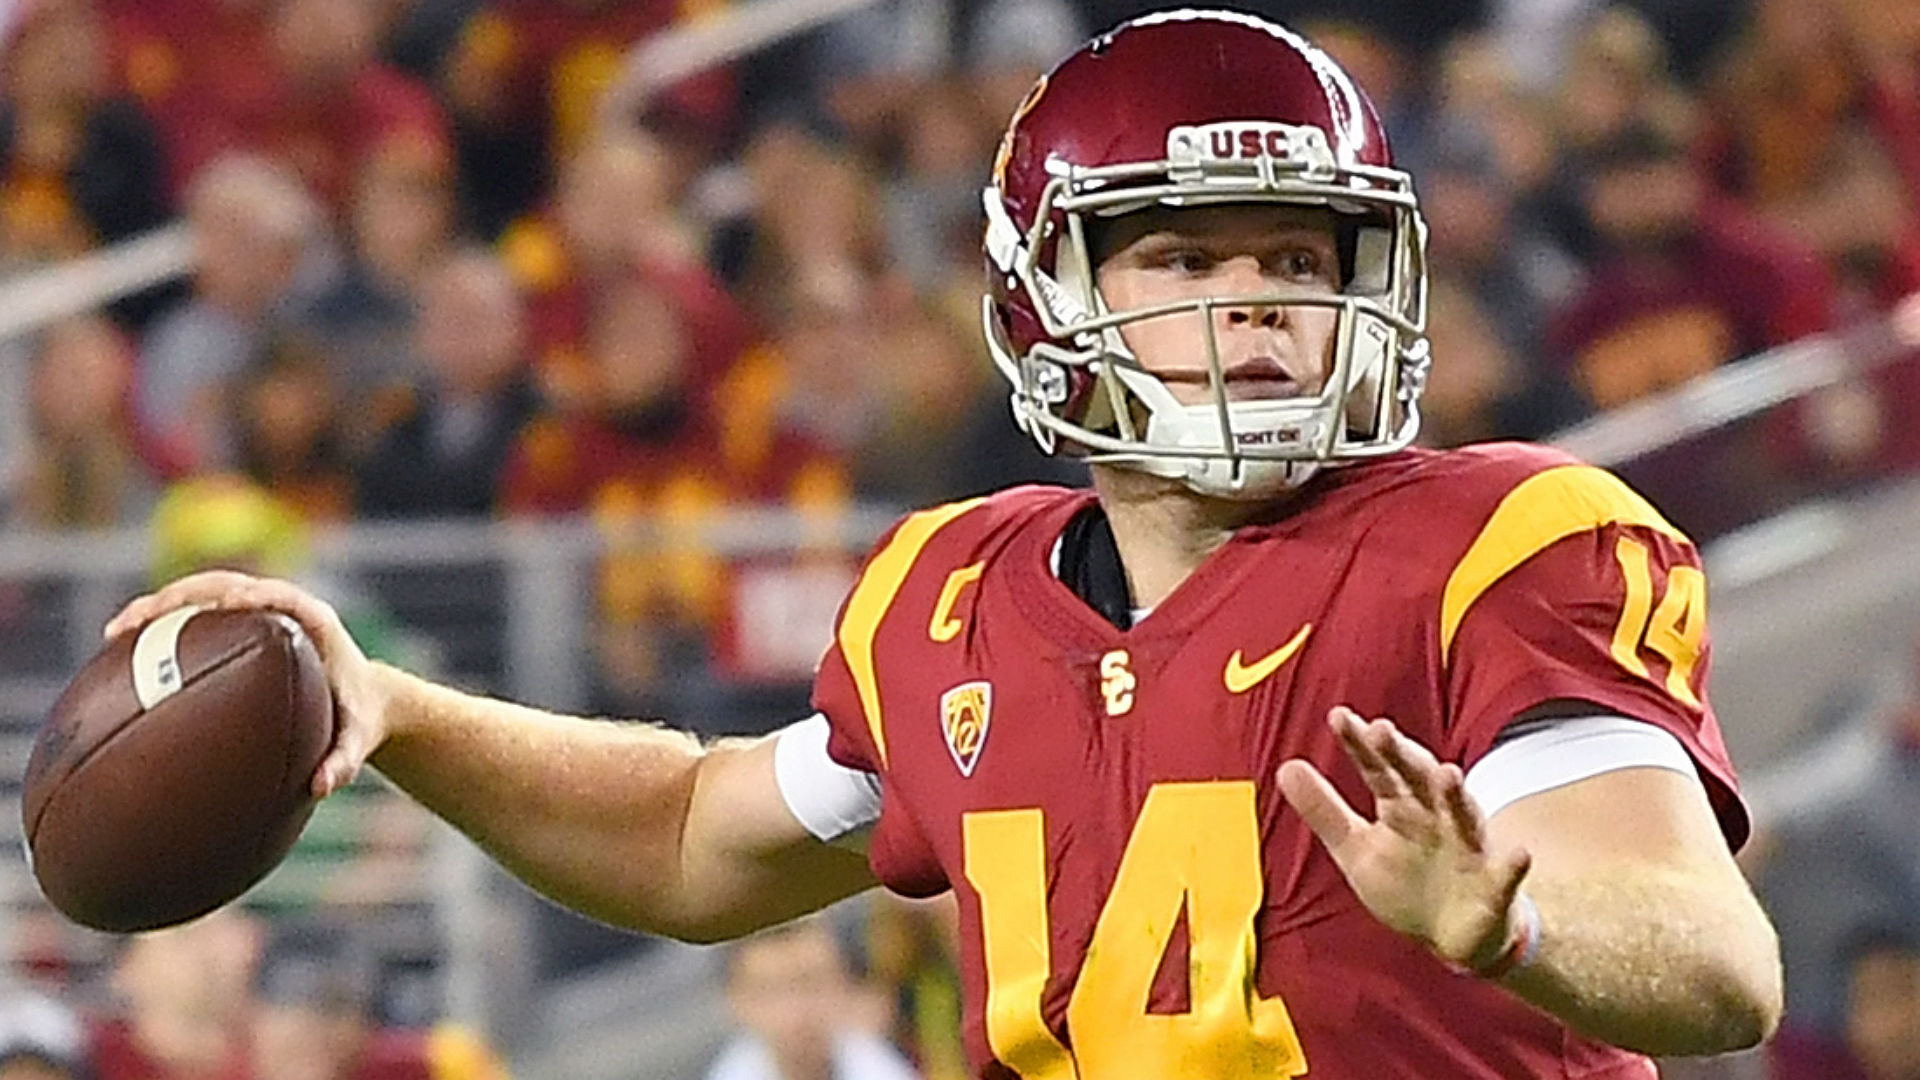 Three takeaways from USC's Pac-12 championship win over Stanford